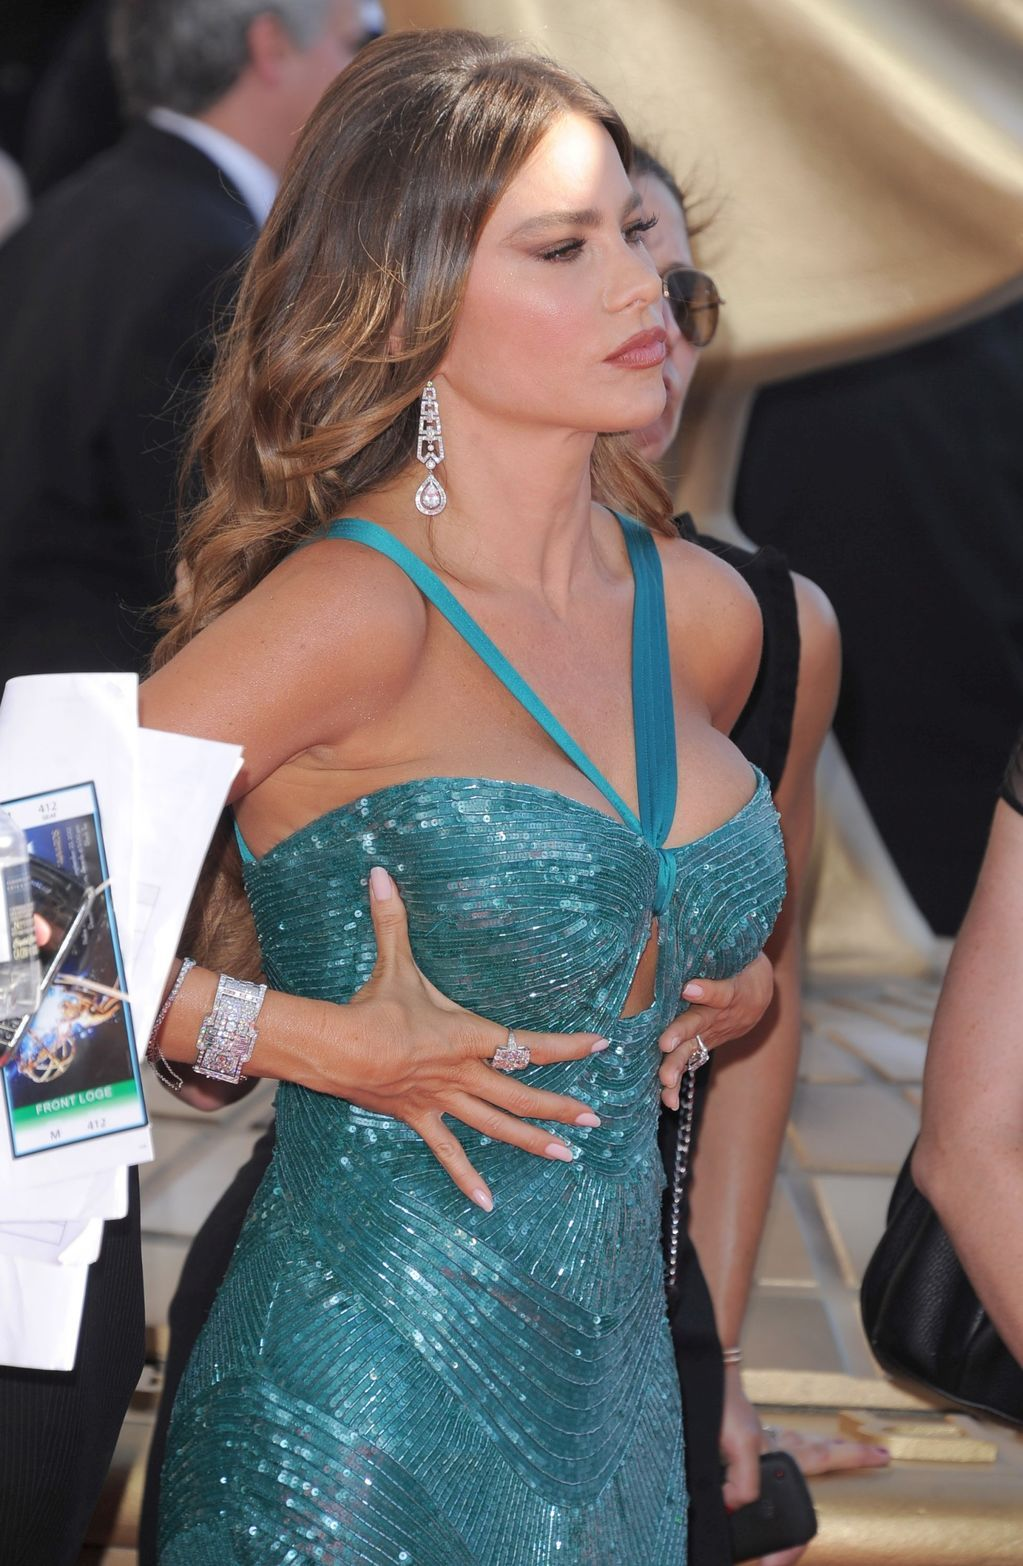 Sofia vergara real boob can suggest